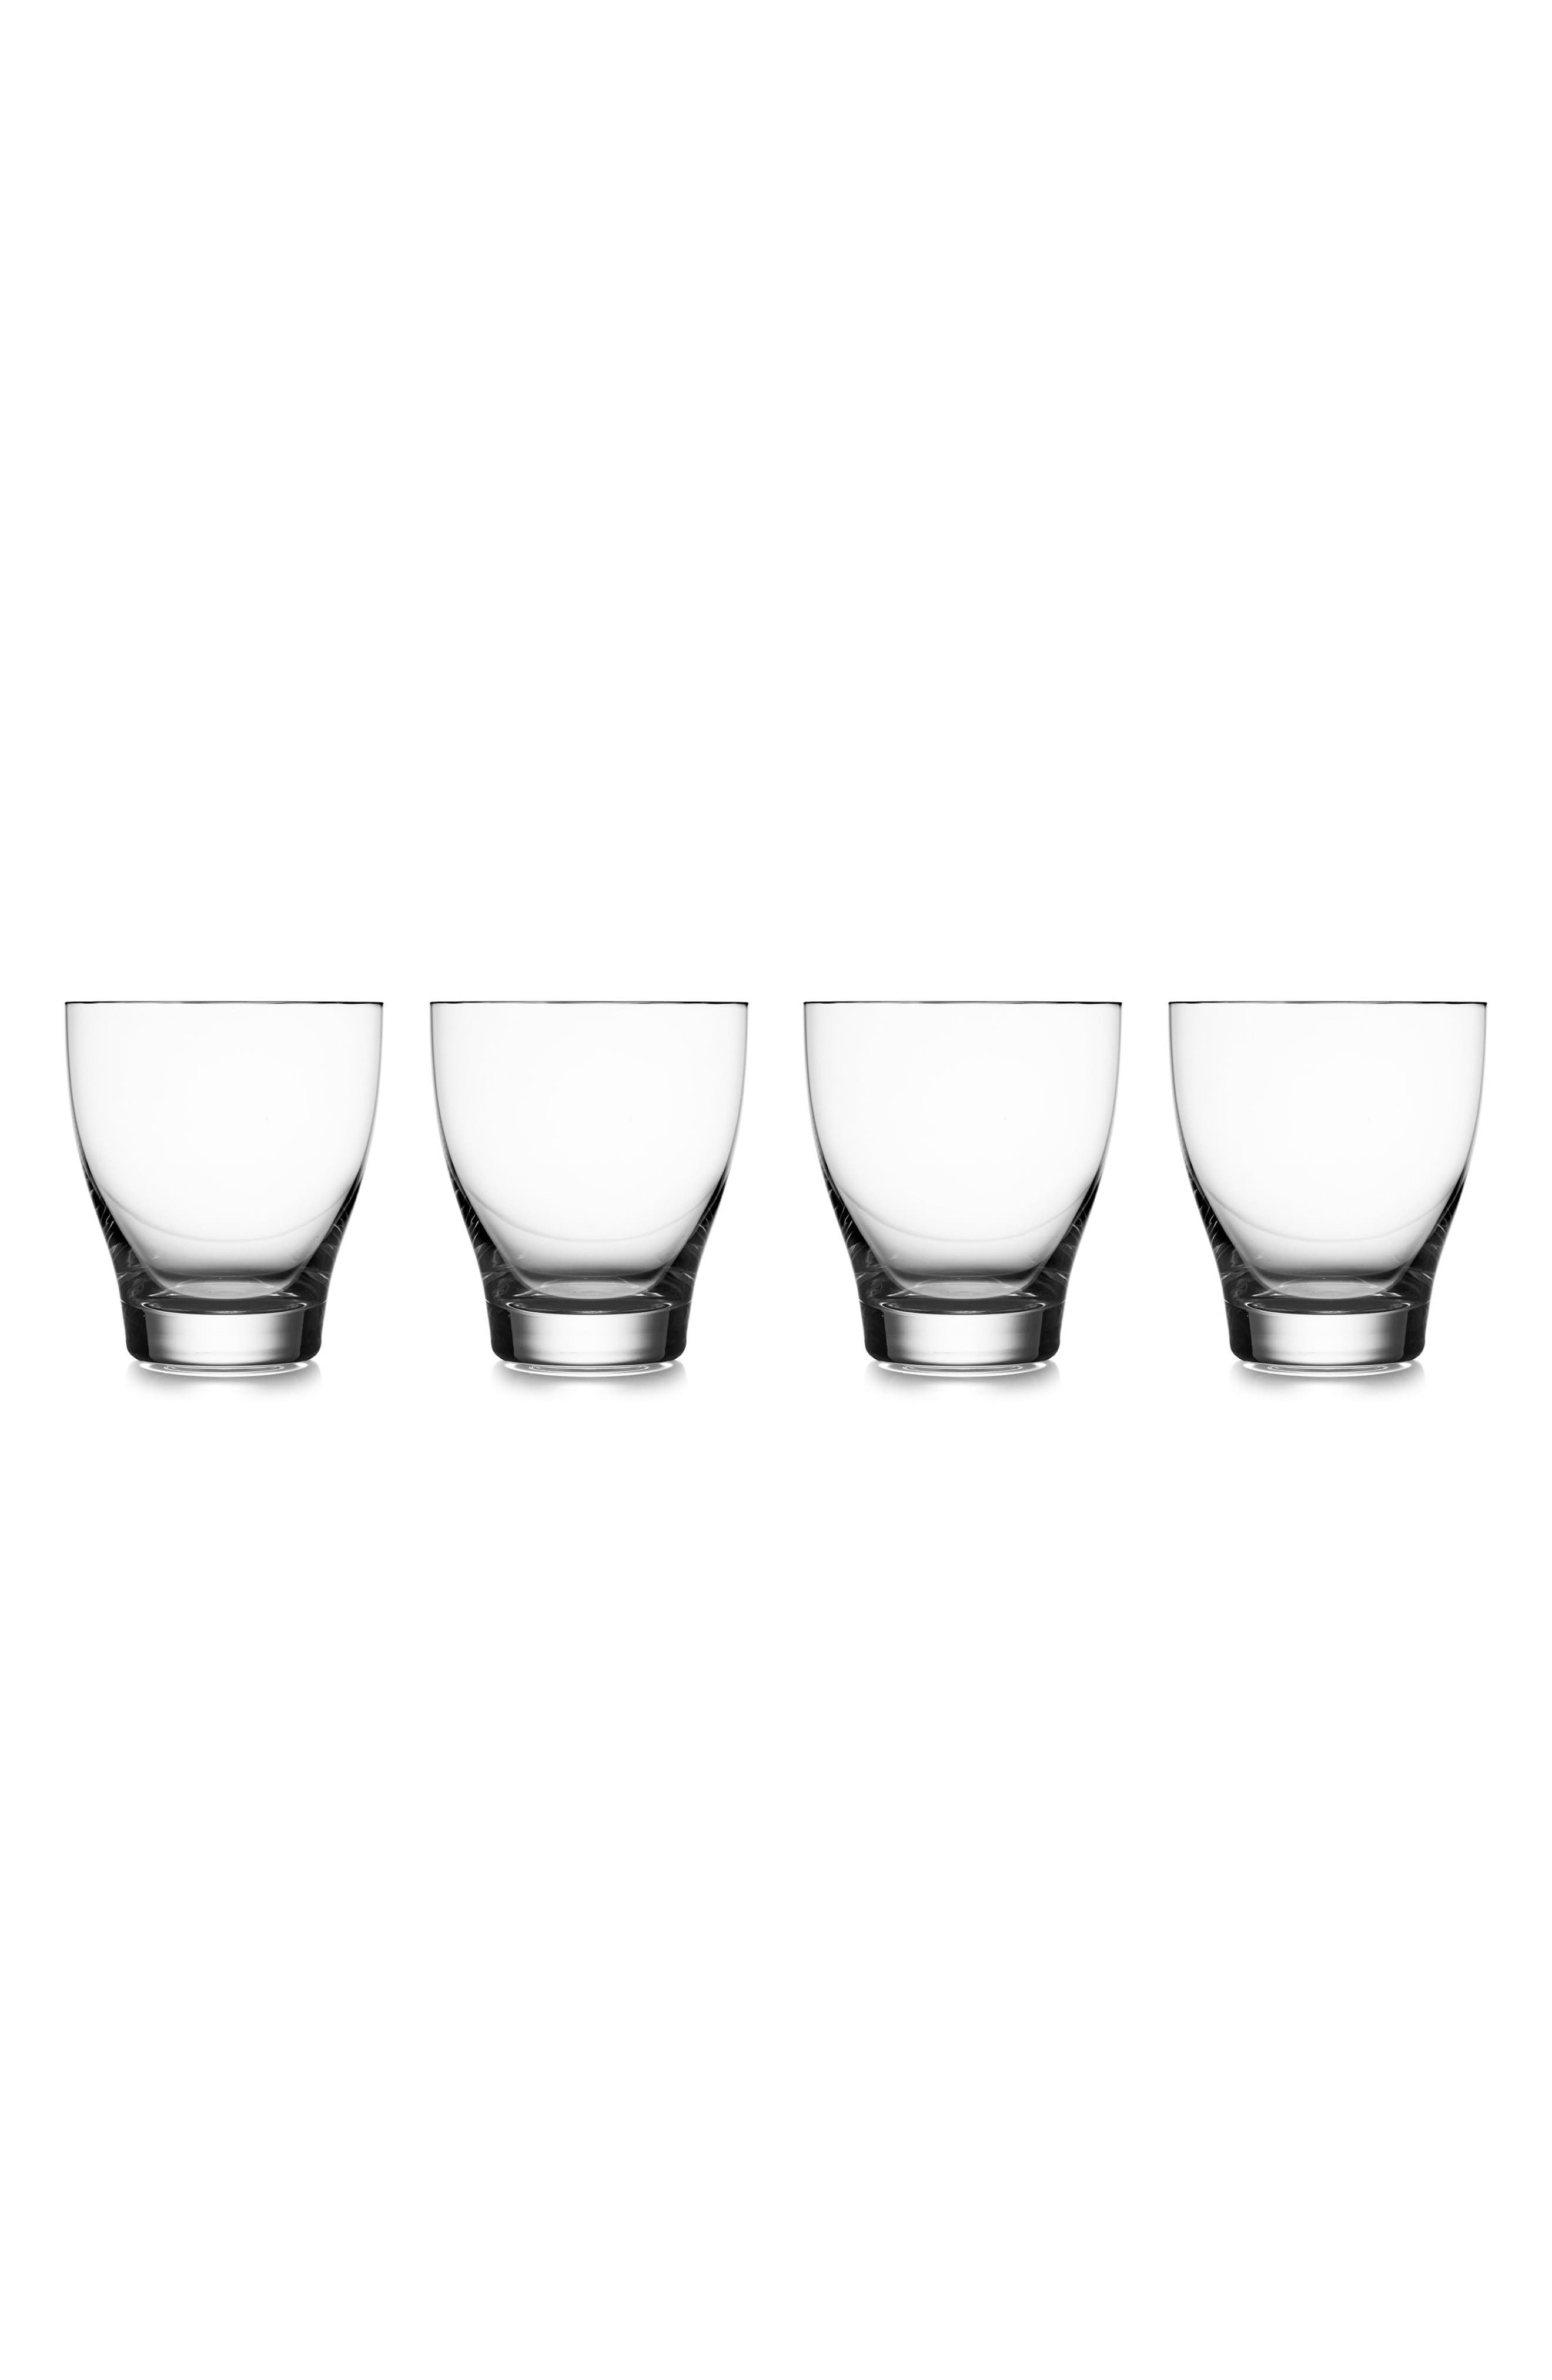 Vie Set of 4 Double Old Fashioned Glasses,                             Main thumbnail 1, color,                             100